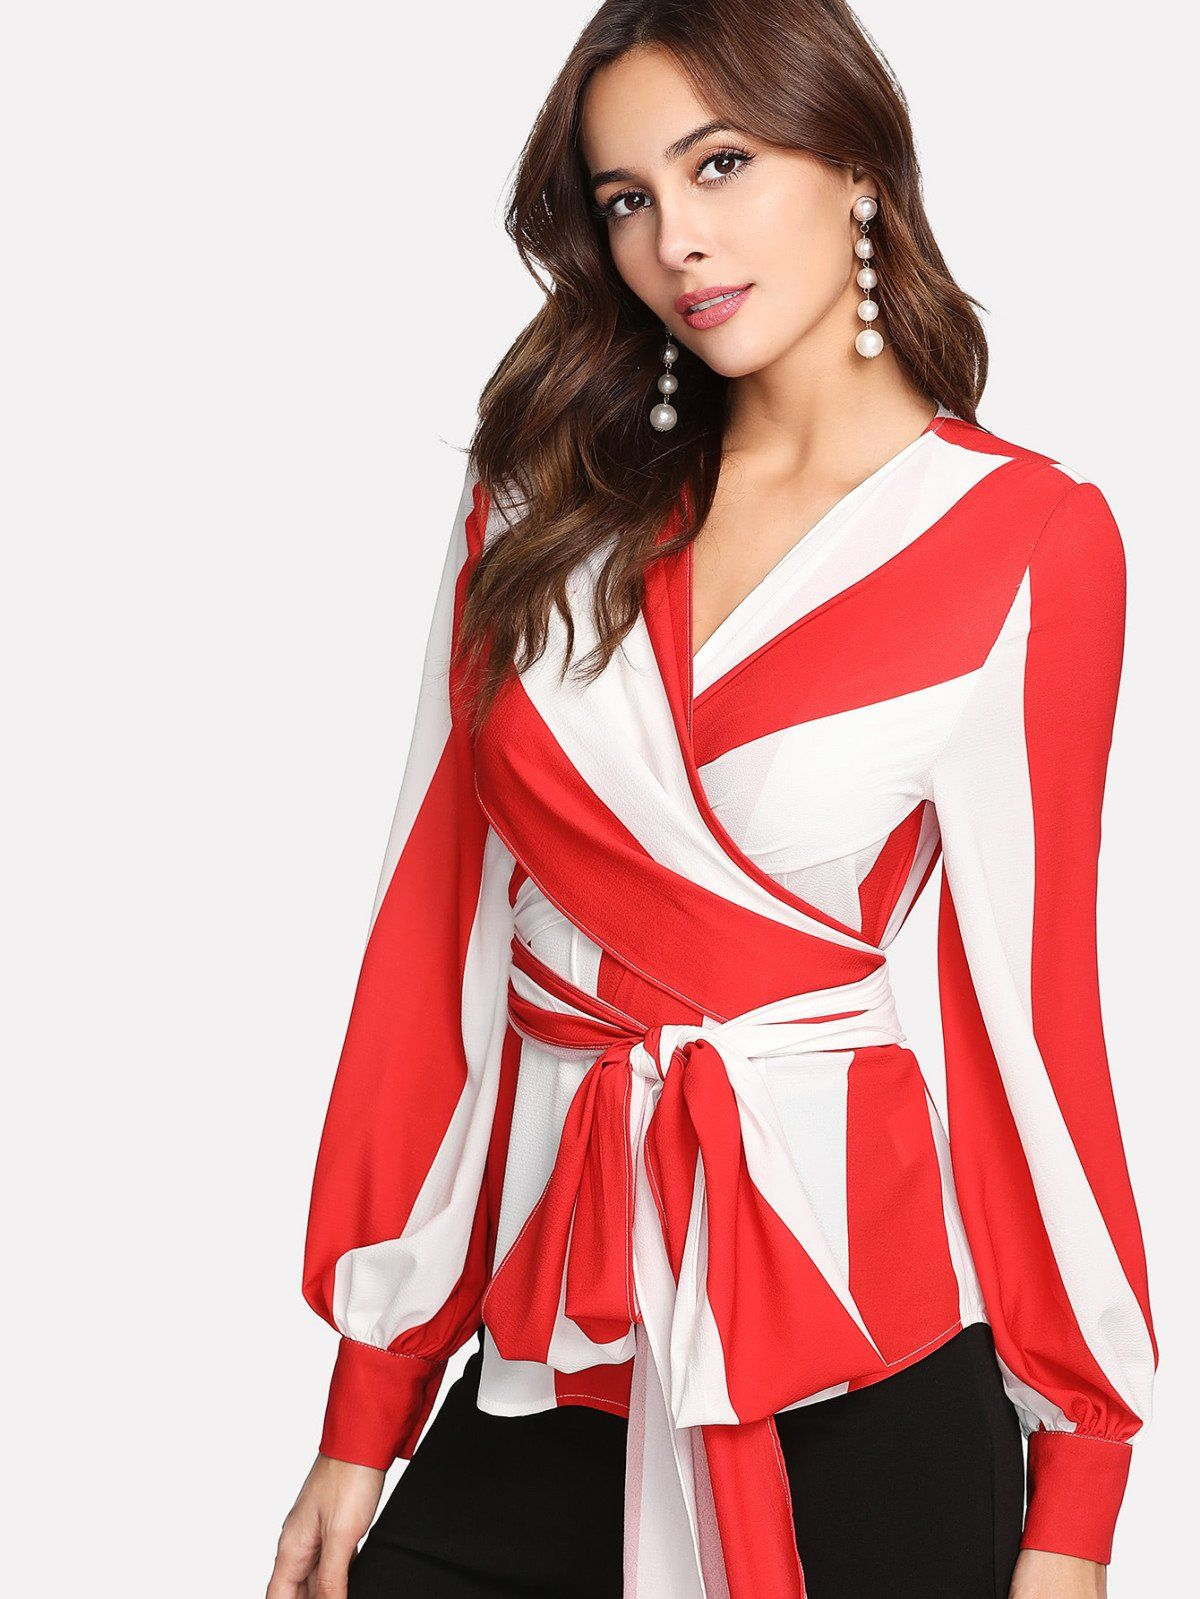 f5b3fe747b Long Sleeve Blouses. Shirt Decorated with Colorblock, Button, Belted, Knot,  Wrap